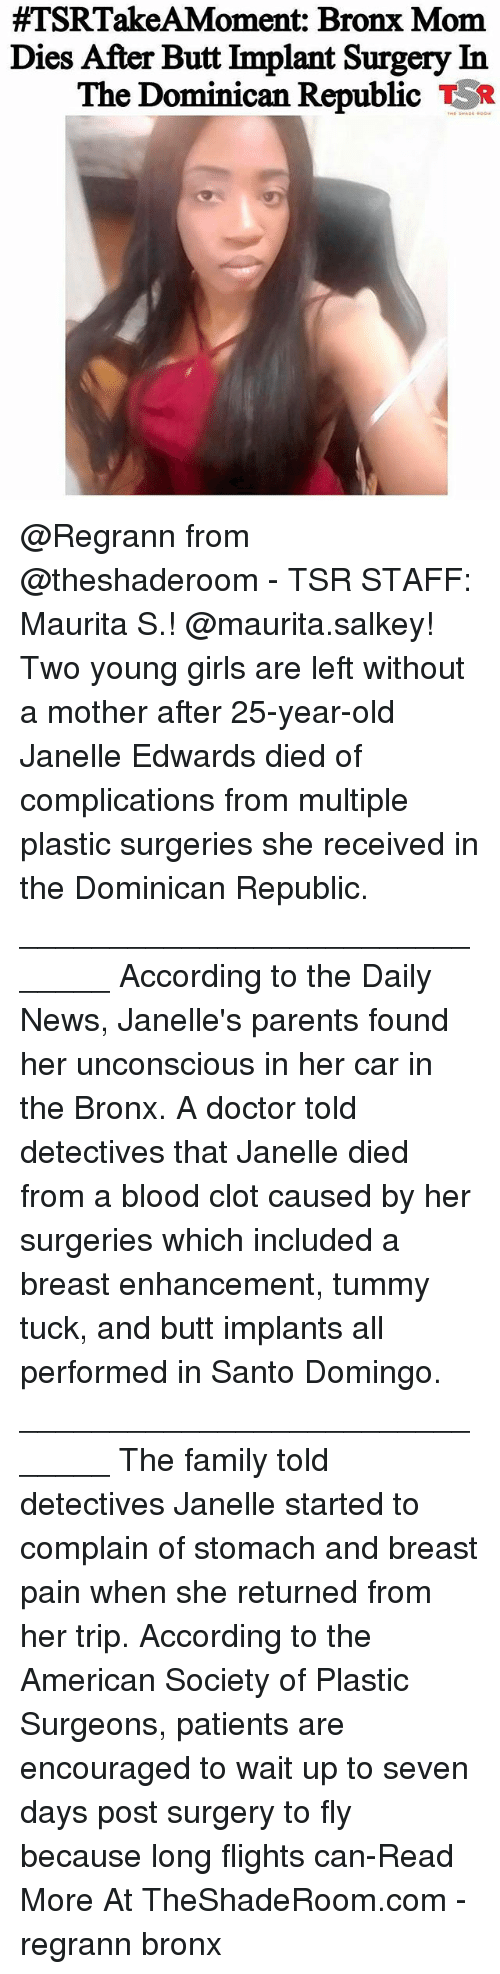 TSRTakeAMoment Bronx Mom Dies After Butt Lmplant Surgery in